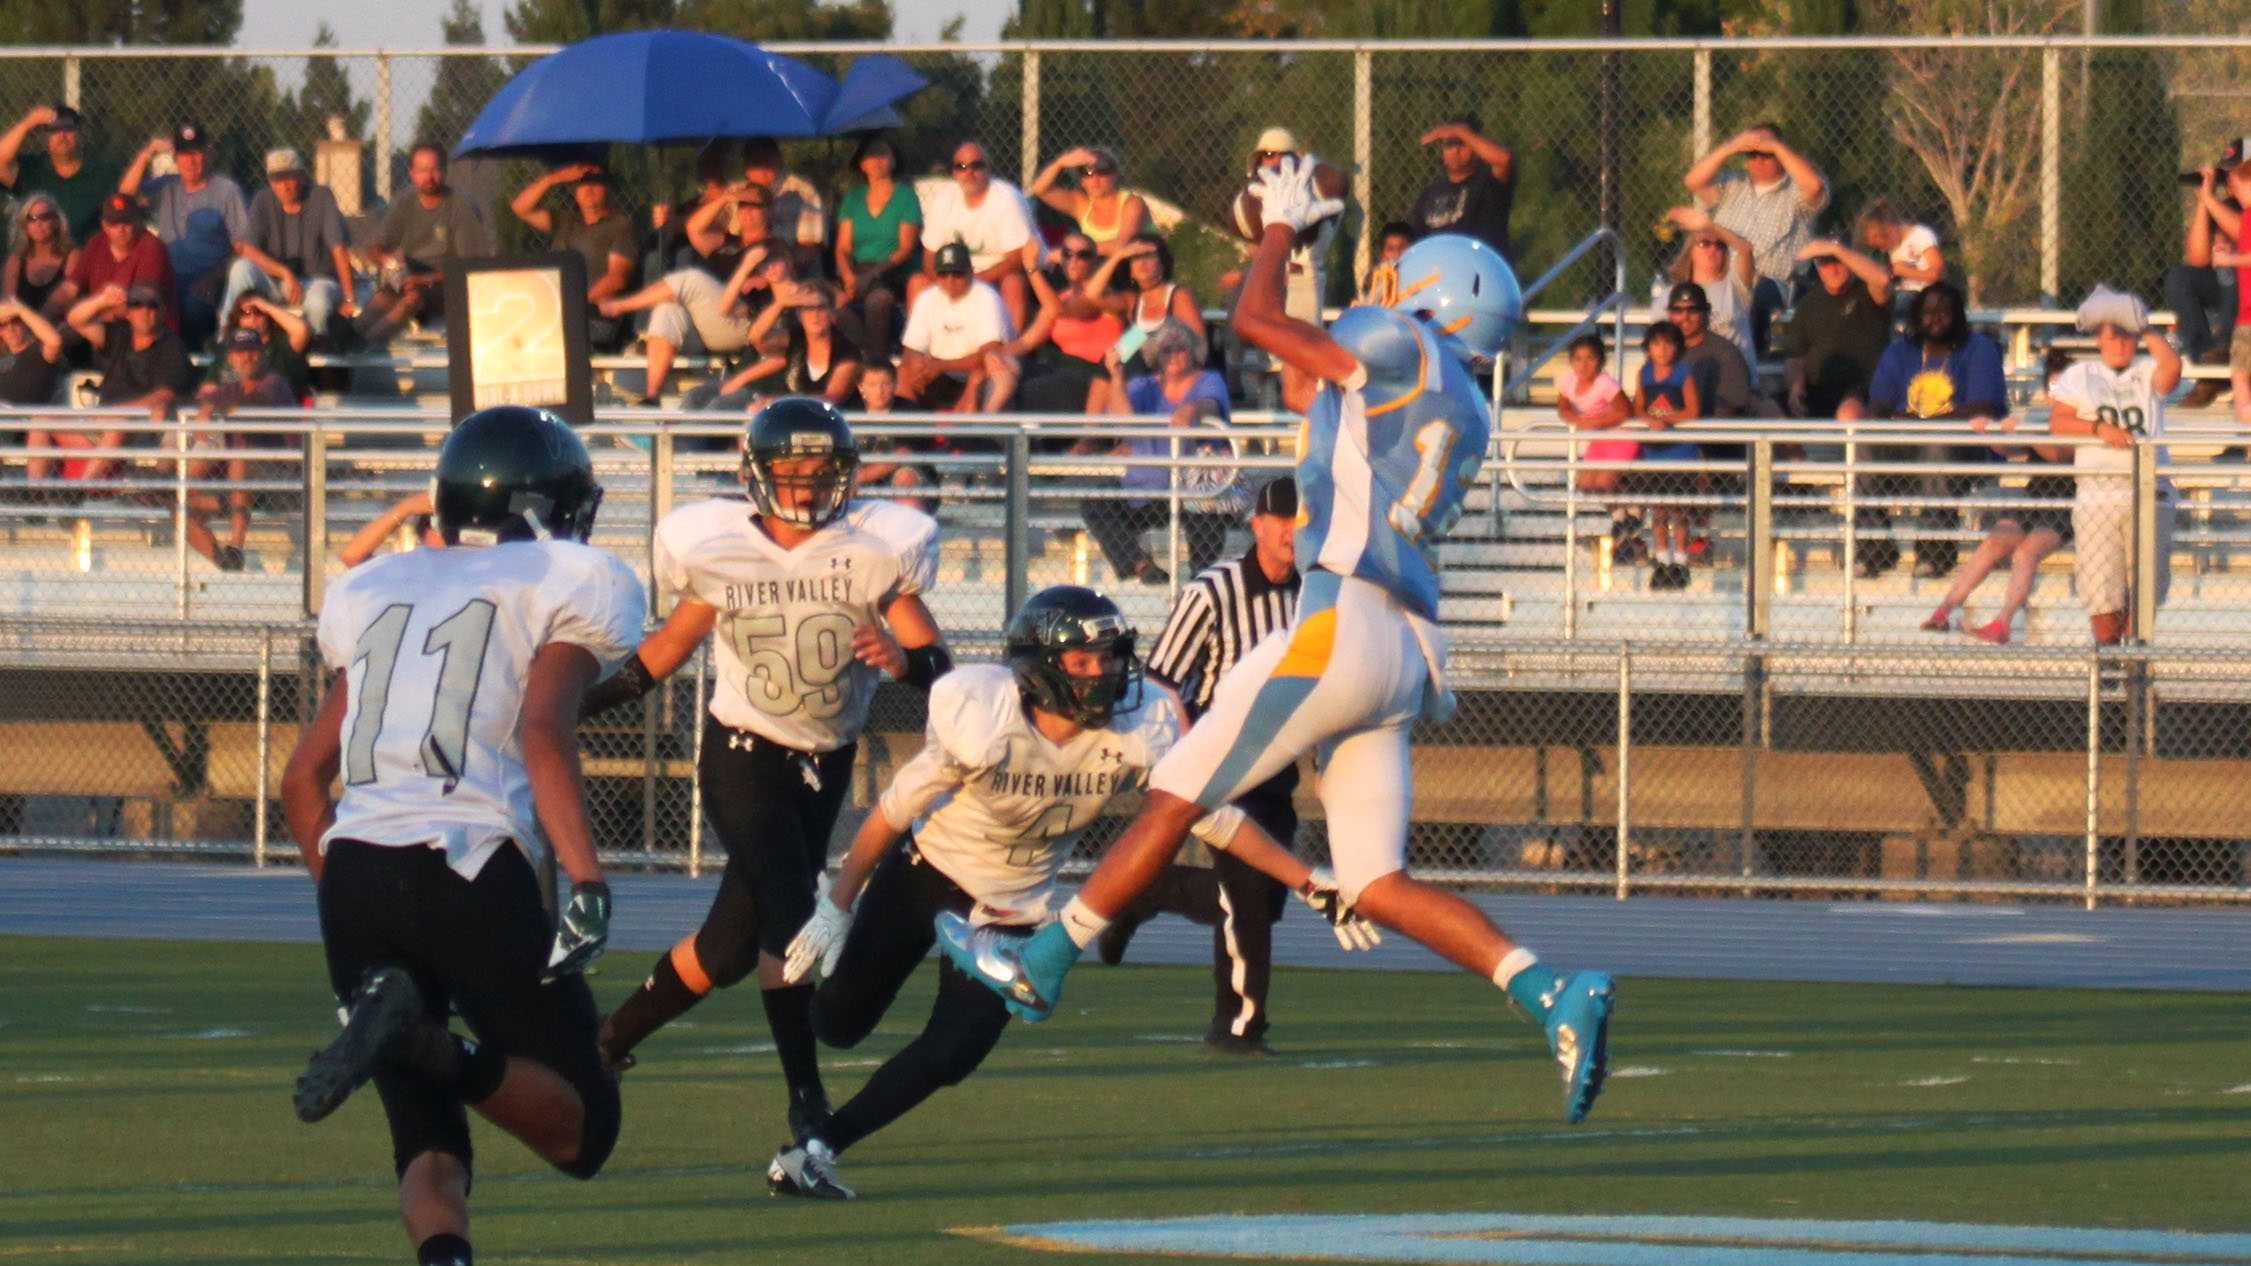 #46 - A player for the Center Cougars jumps up to grab the football as a few River Valley players run towards him.